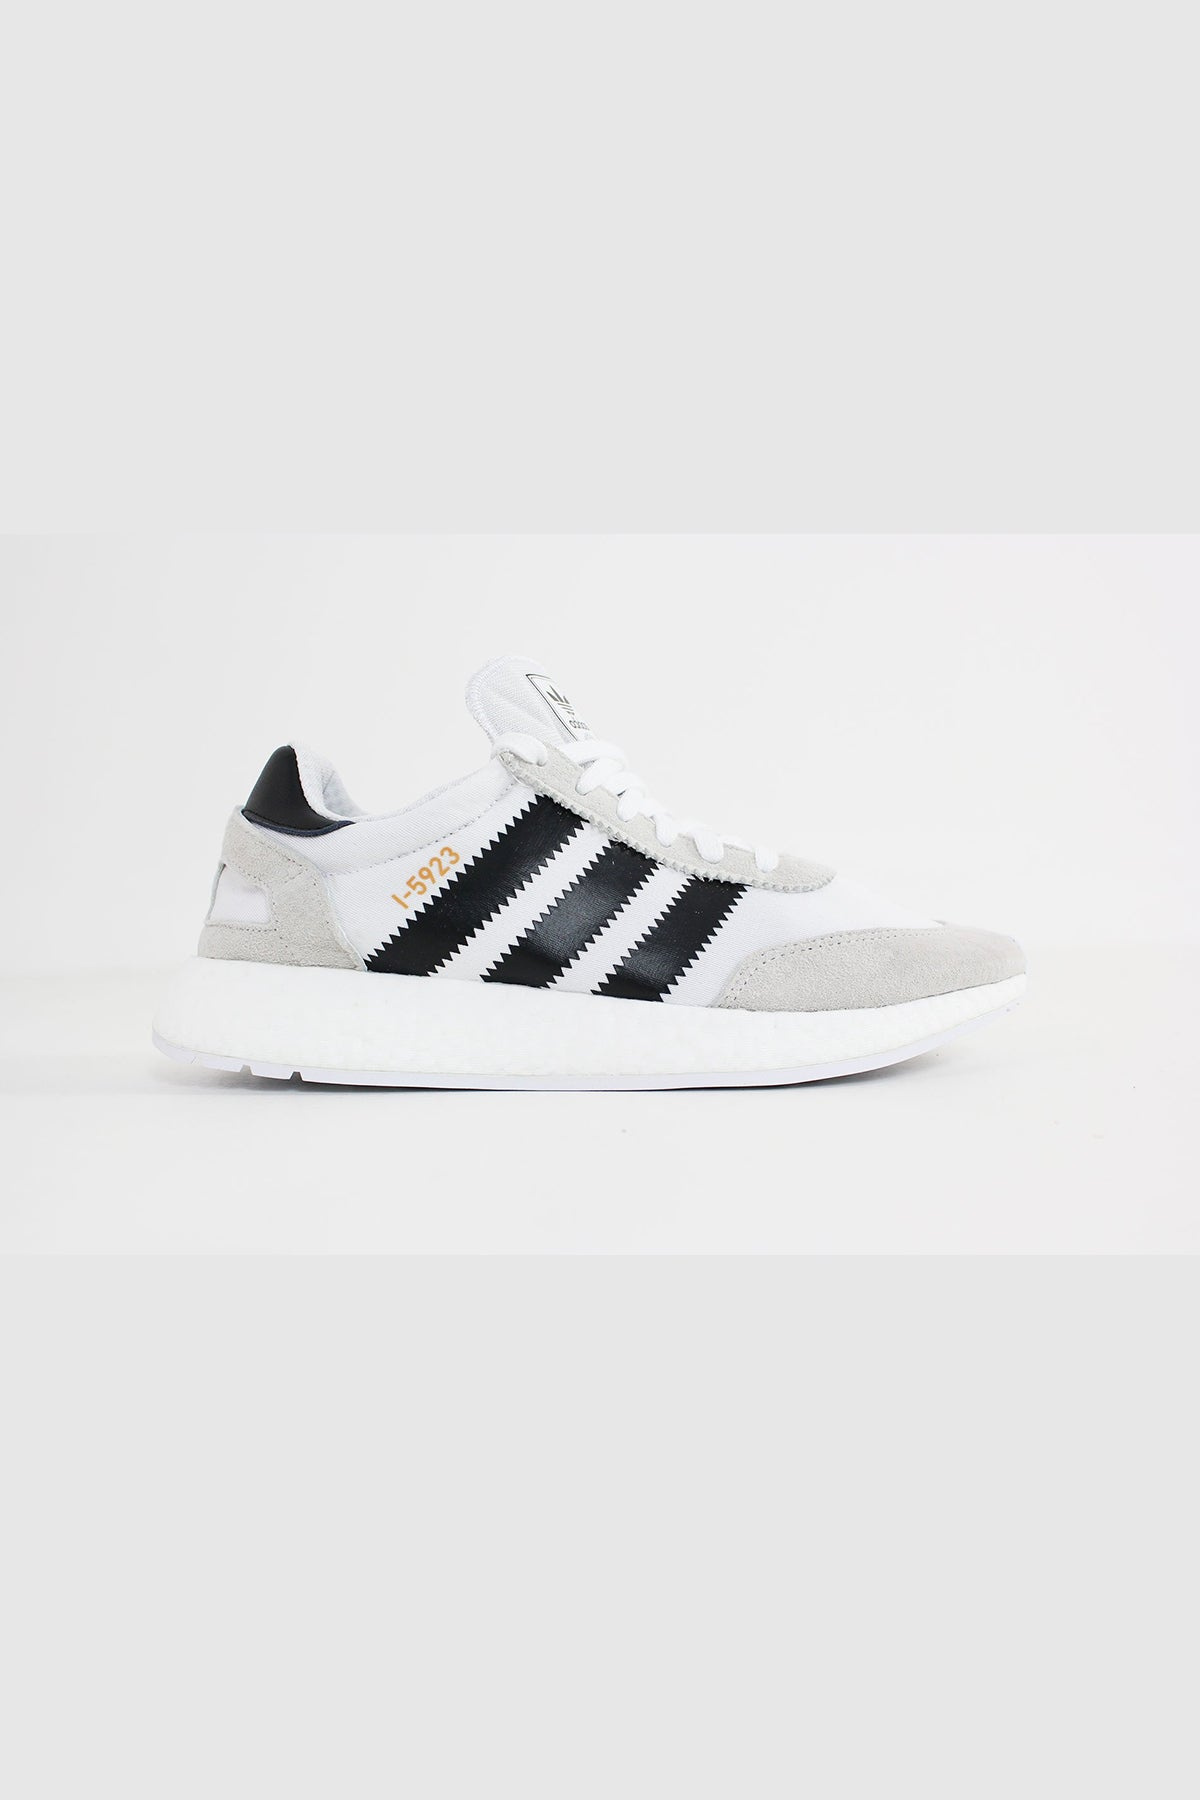 Adidas - I-5923 (FTWR White/ Core Black/ Copper Met.) CQ2489